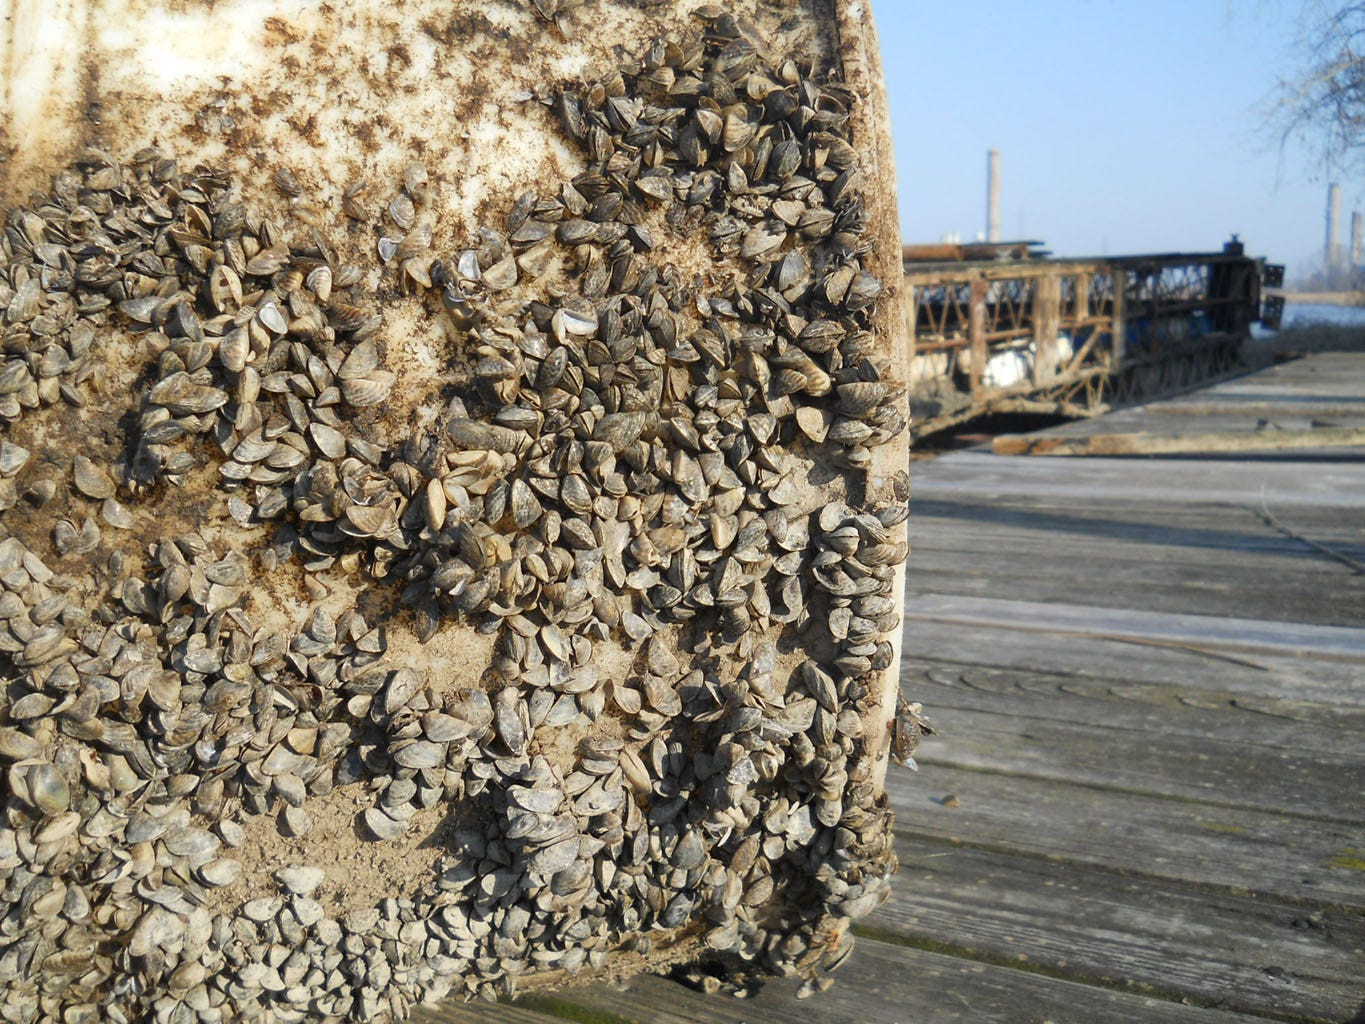 Zebra mussels on barrel that was pulled from the Saginaw River in November 2011. Photo by Chris McCarus/MichiganNow